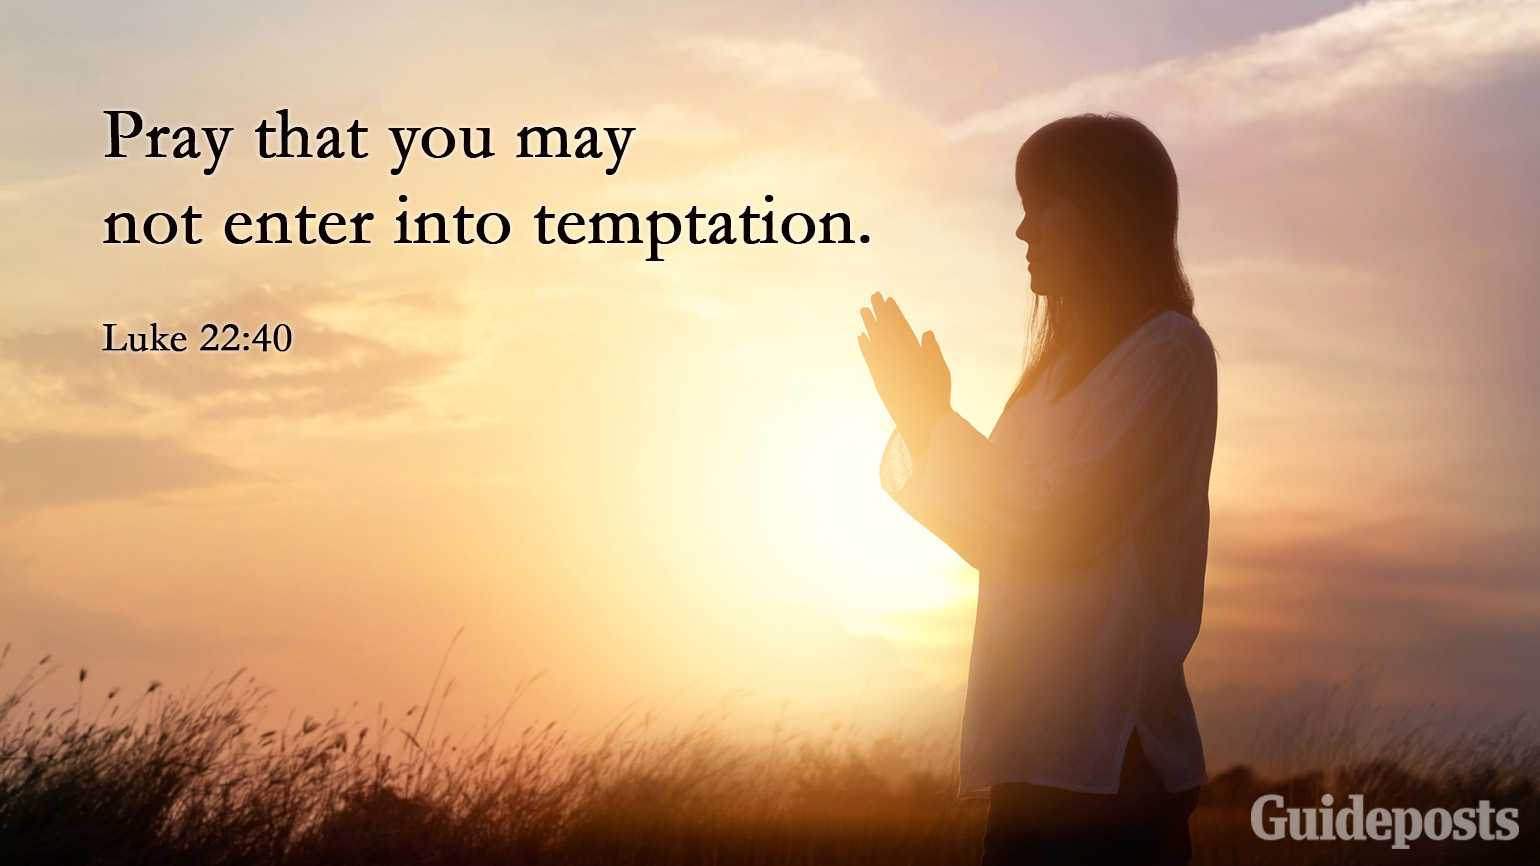 10 Inspiring Bible Verses for Fasting | Guideposts